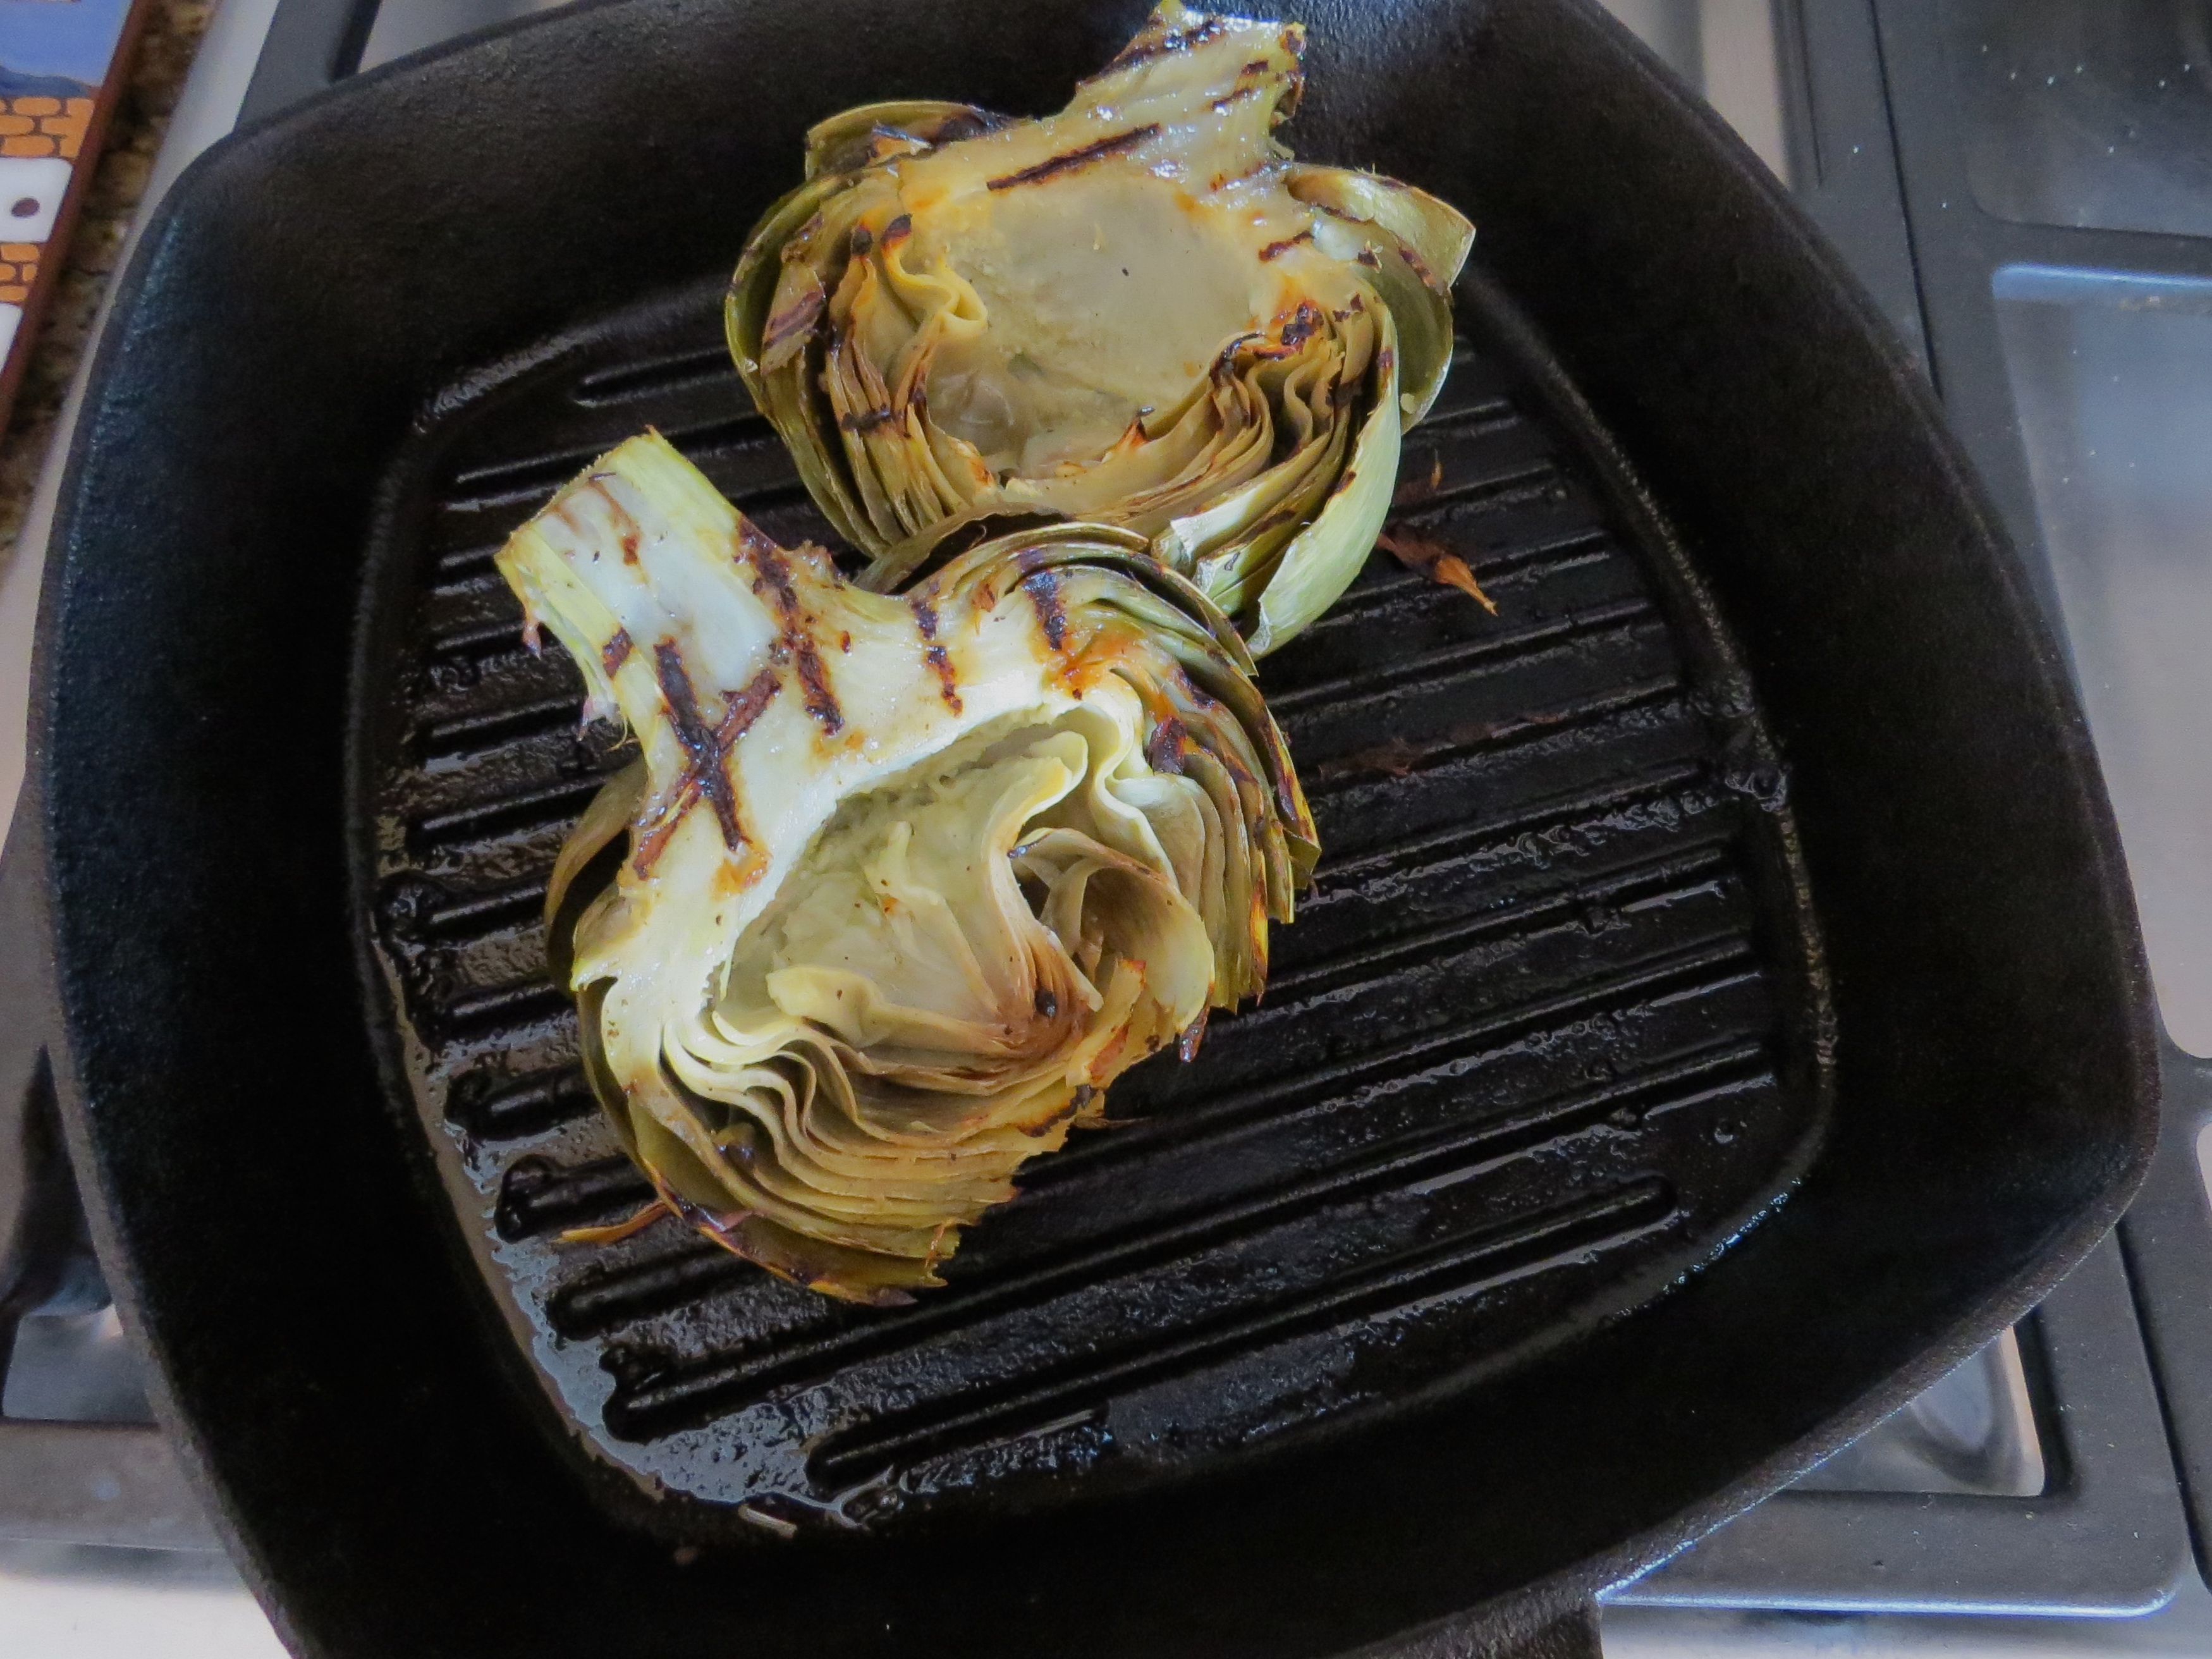 I mixed together 2 sliced garlic cloves, 1 Tbs, lemon juice, 1/2 tsp of salt and pepper and 2 TBS olive oil. After brushing the entire artichoke halves with the mix, I grilled them for 6 minutes, 3 minutes for each side. No condiments needed for serving...so good.